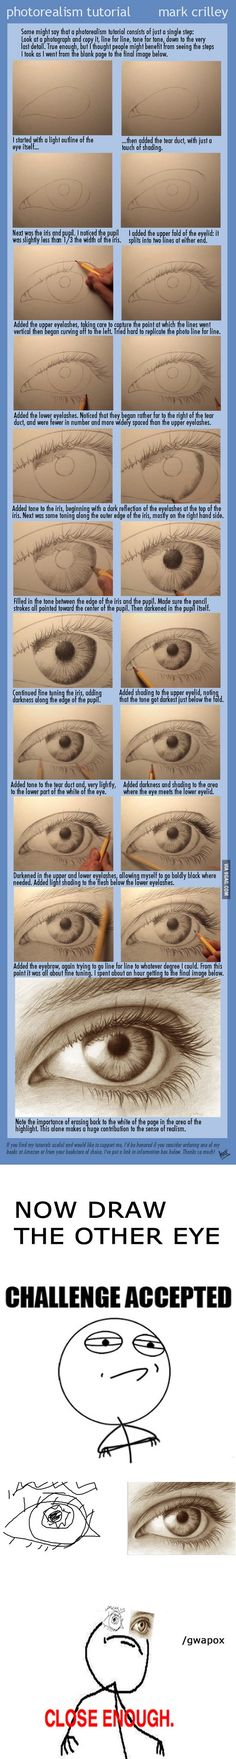 Drawing eyes step by step